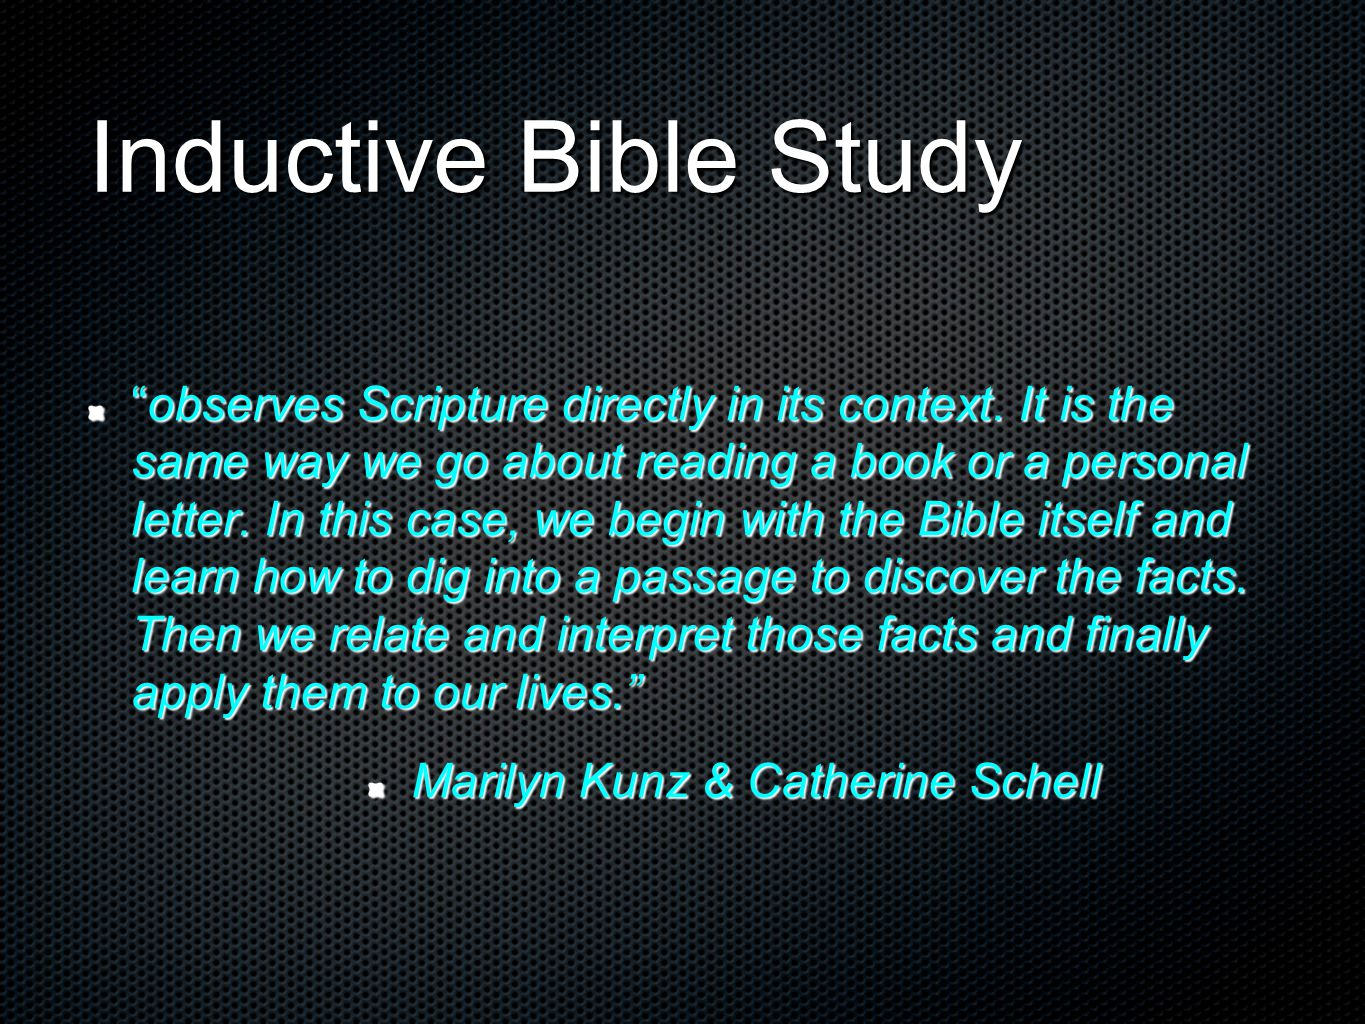 Inductive Bible Study observes Scripture directly in its context.